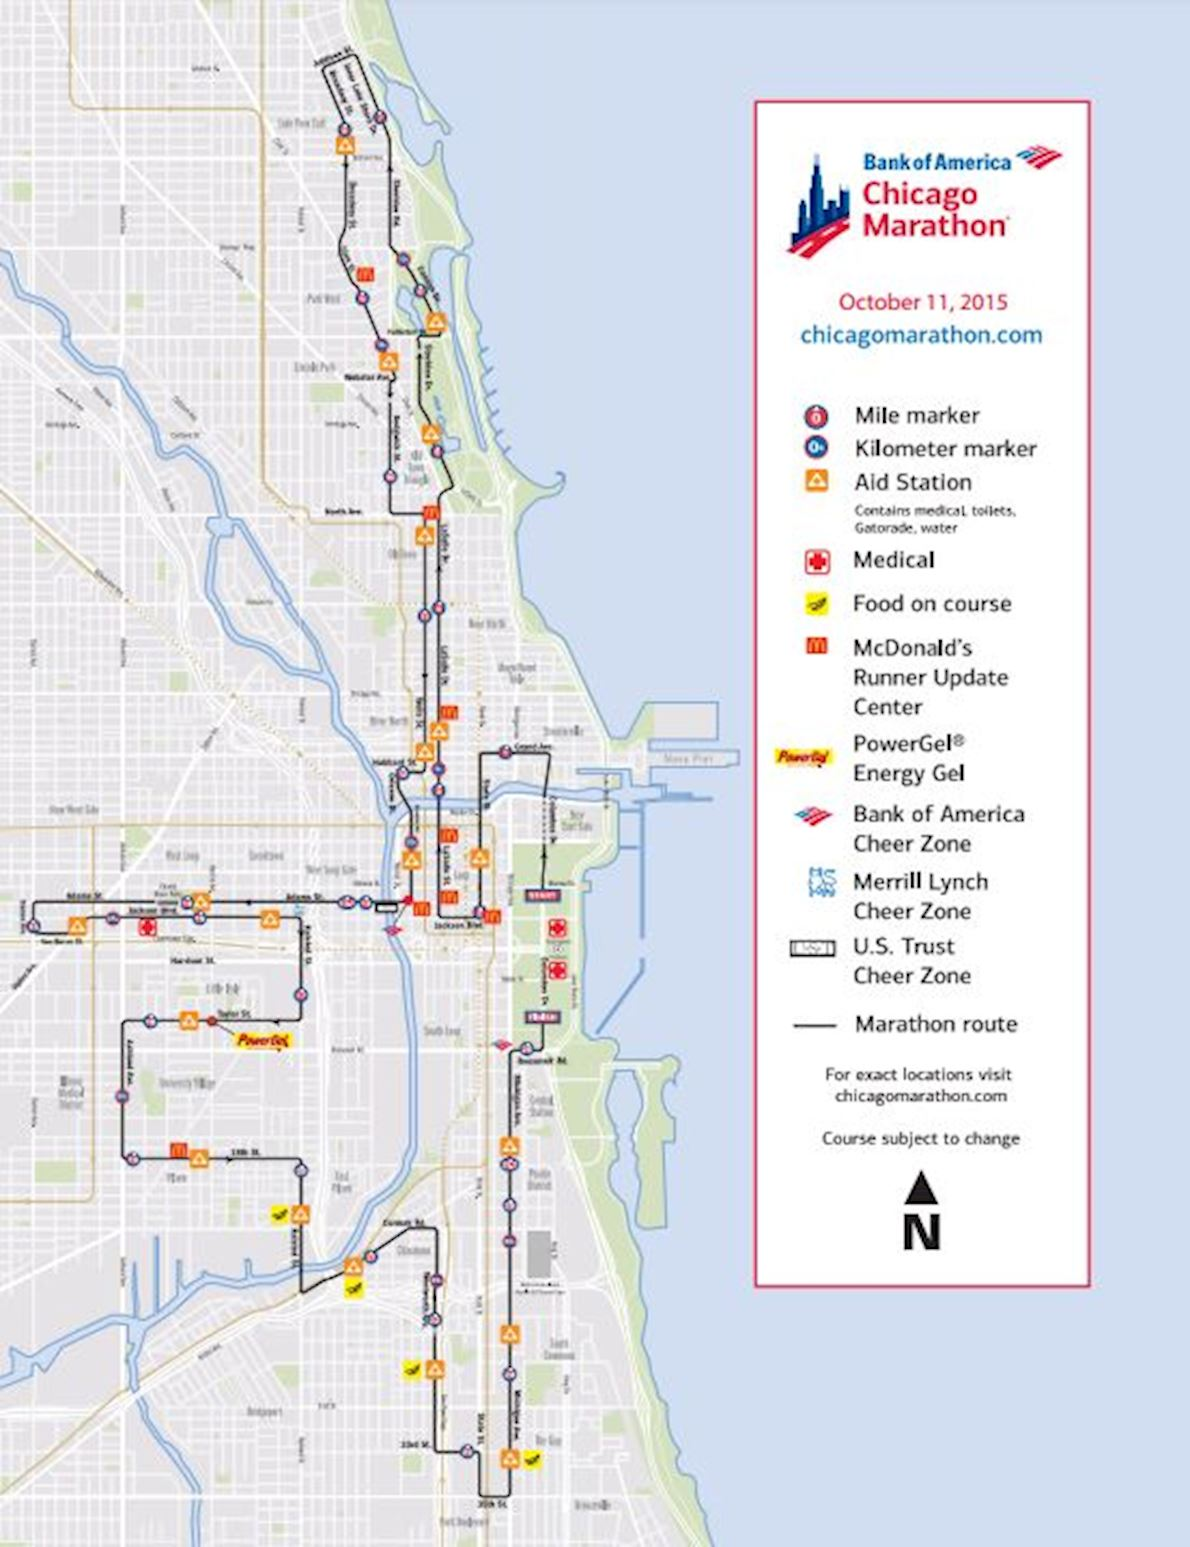 Chicago Marathon Elevation Map Chicago Marathon, Oct 13 2019 | World's Marathons